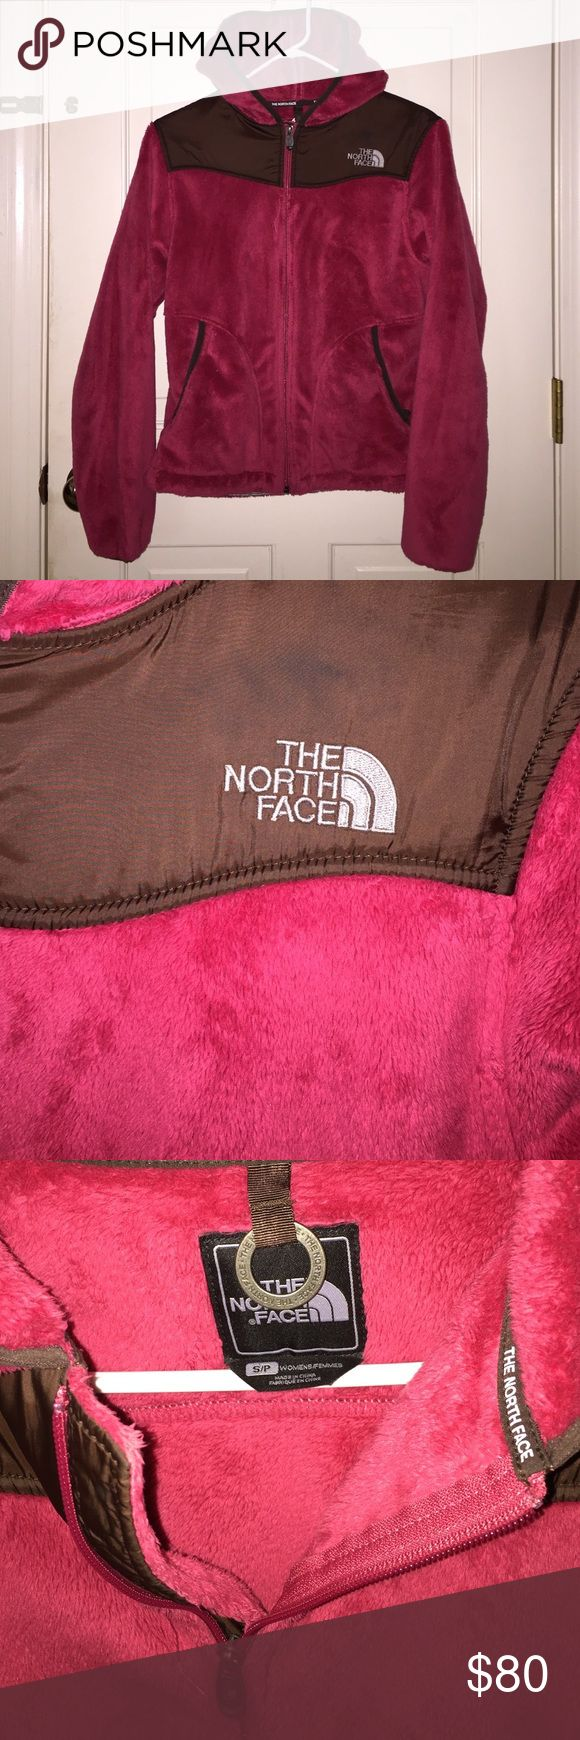 🎀 HOLIDAY CLEAN OUT🎀 Pink fuzzy North Face with brown patching. Size Small worn maybe once for a couple hours. Zipper pockets on both sides. Stretch sleeves around the wrists. Has a hood. There are no flaws. North Face Jackets & Coats